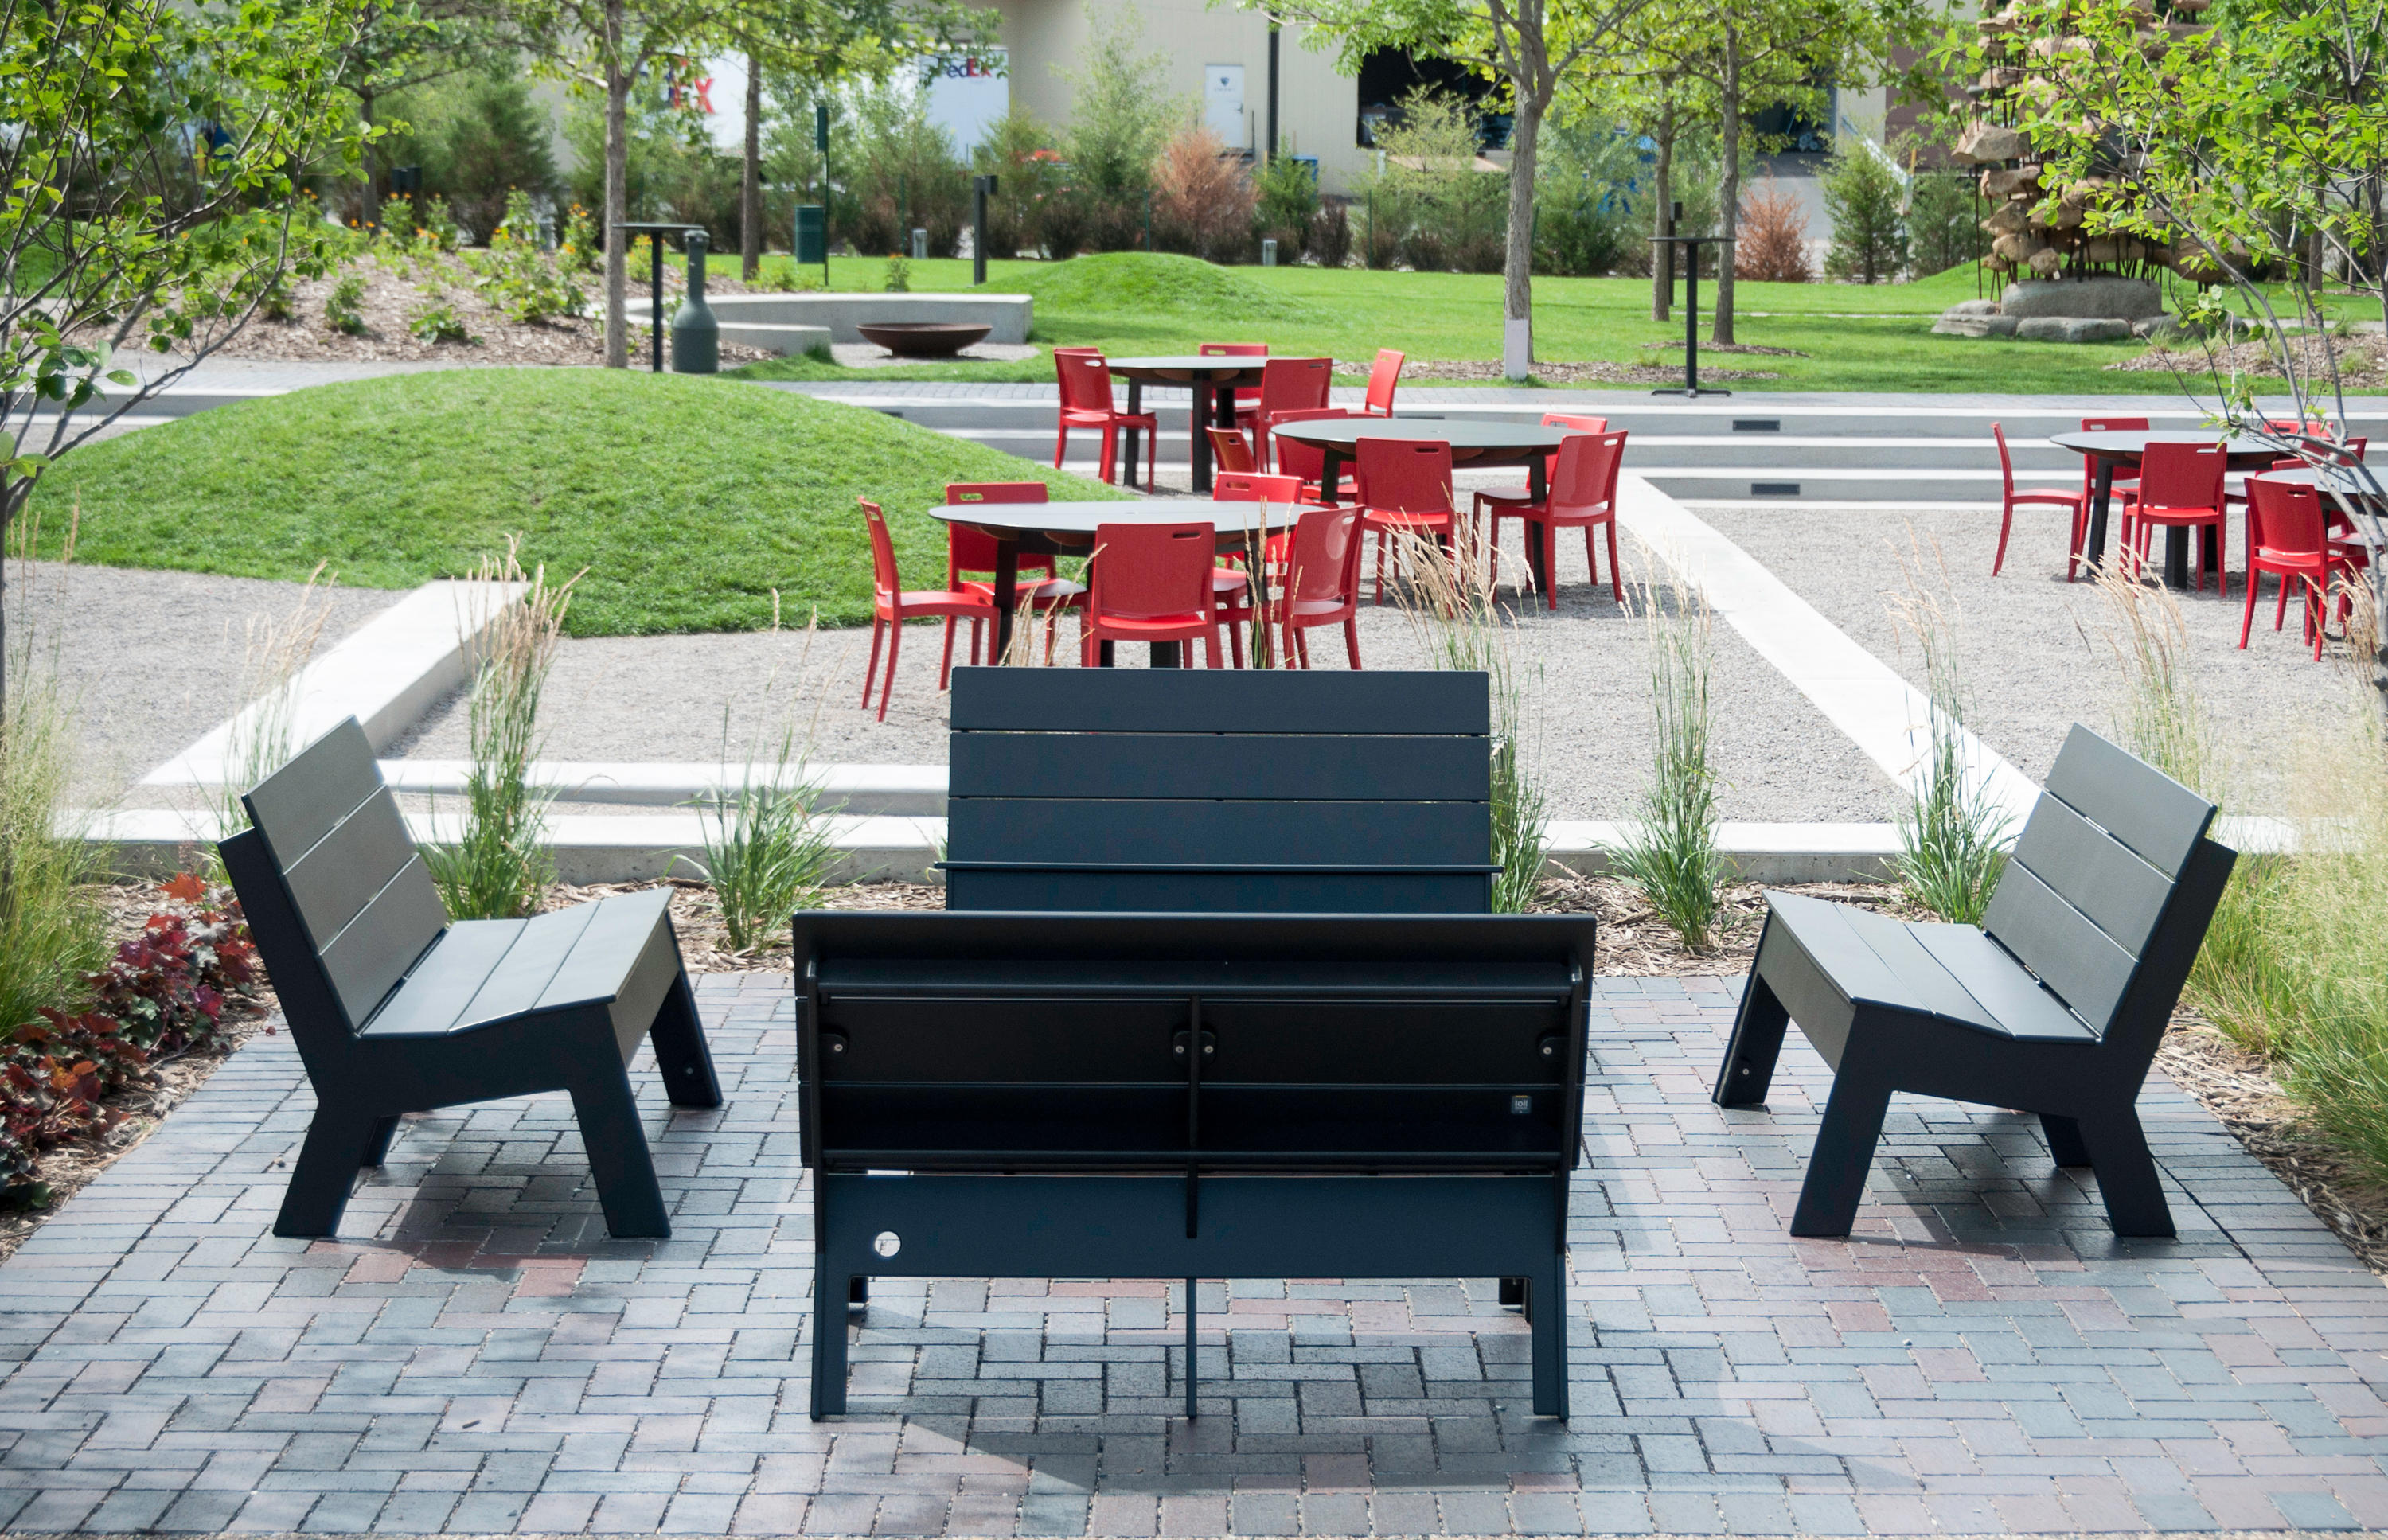 ... Fire Bench by Loll Designs